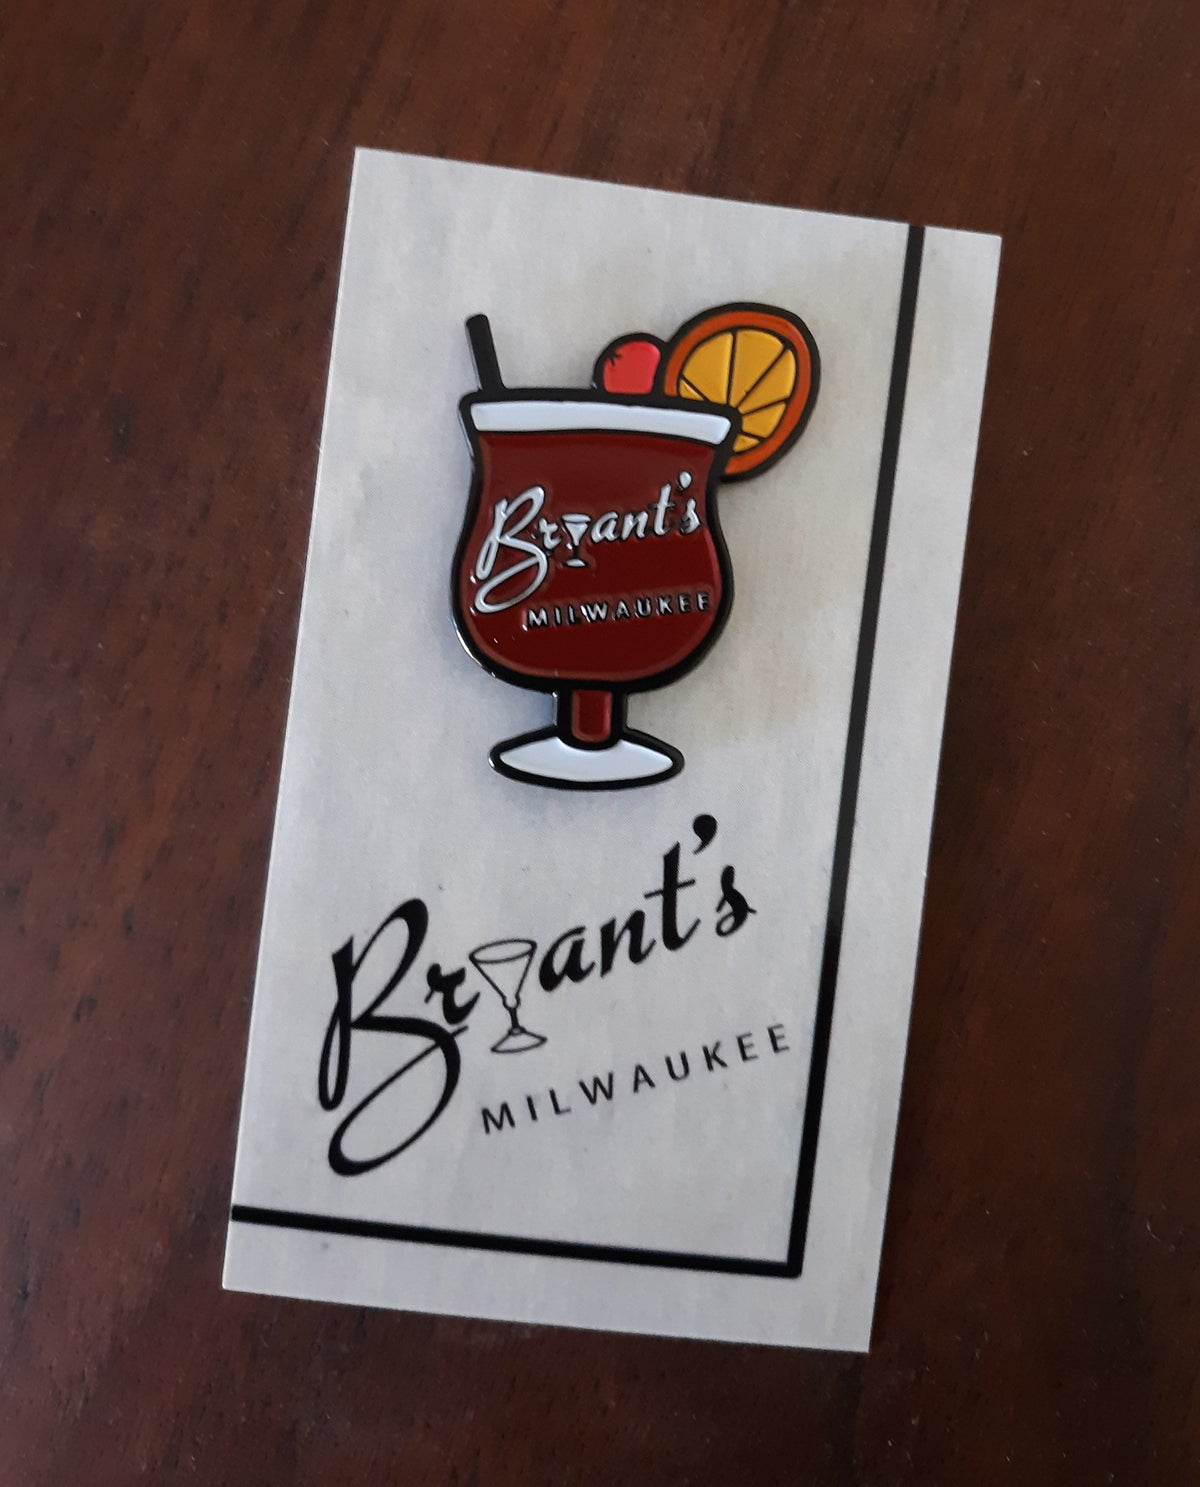 "BRYANT'S COCKTAIL LOUNGE Milwaukee 1.5"" Old Fashioned Limited Edition Enamel Pin"